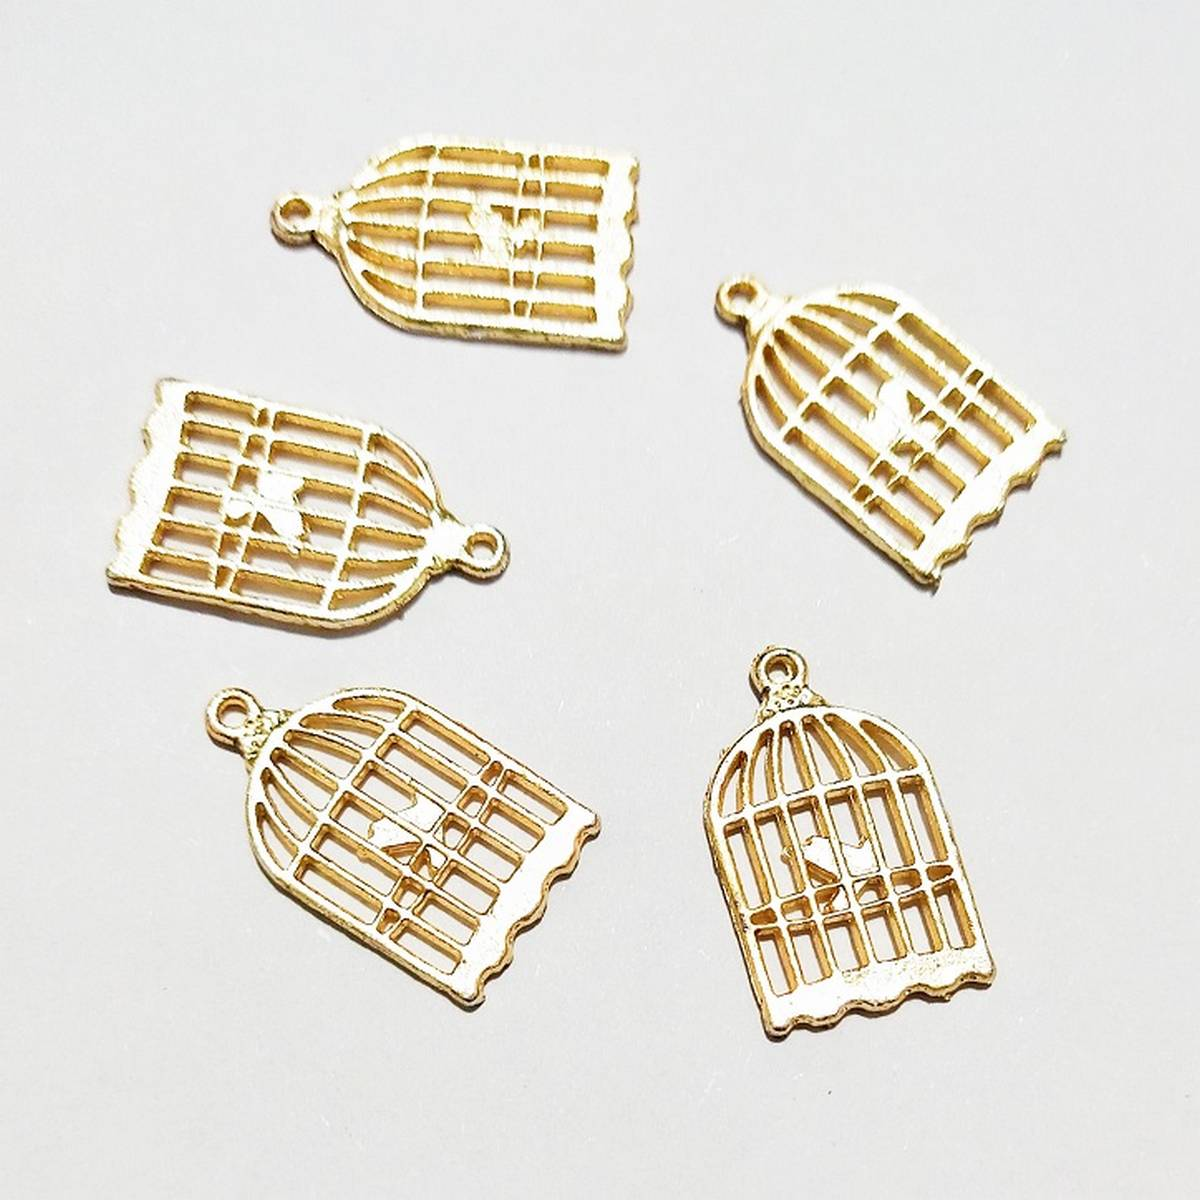 Cage Charms 5pcs Golden  Color Metal Alloy Jewelry DIY Accessories